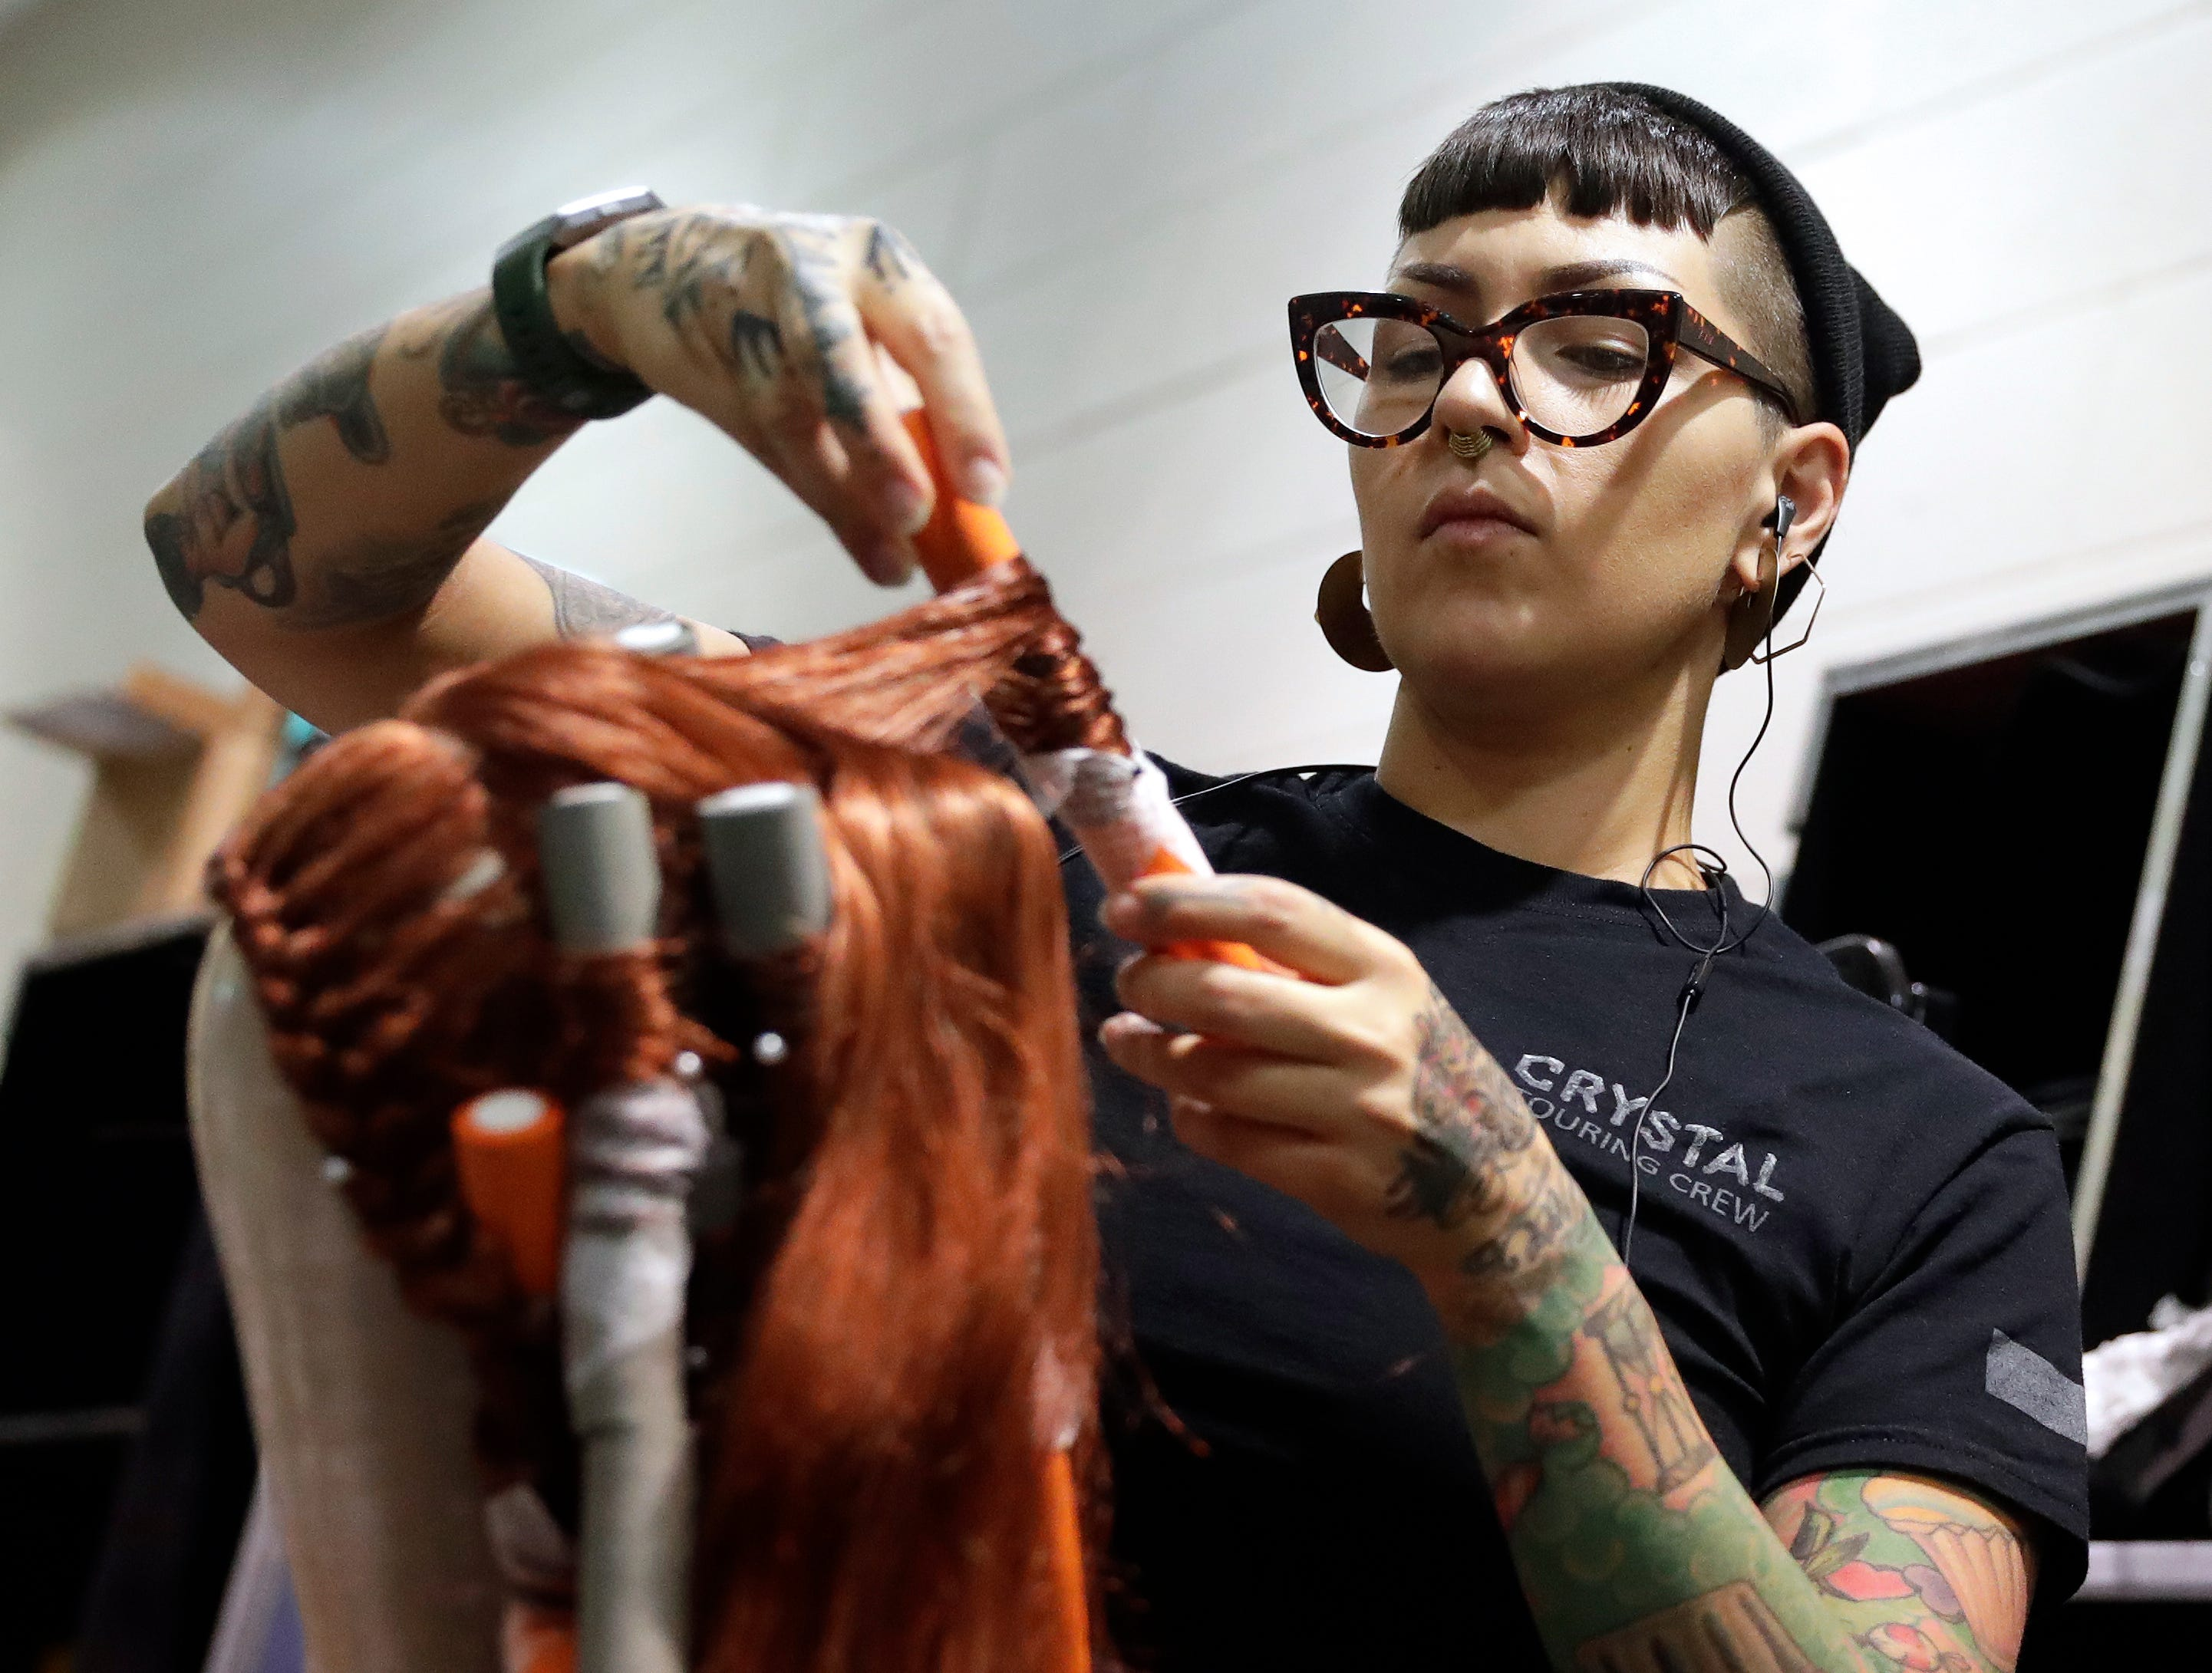 """Kate Major, wardrobe technician for Cirque du Soleil's """"Crystal"""", styles a wig before the first performance Oct. 11, 2018 at the Resch Center in Ashwaubenon, Wis."""